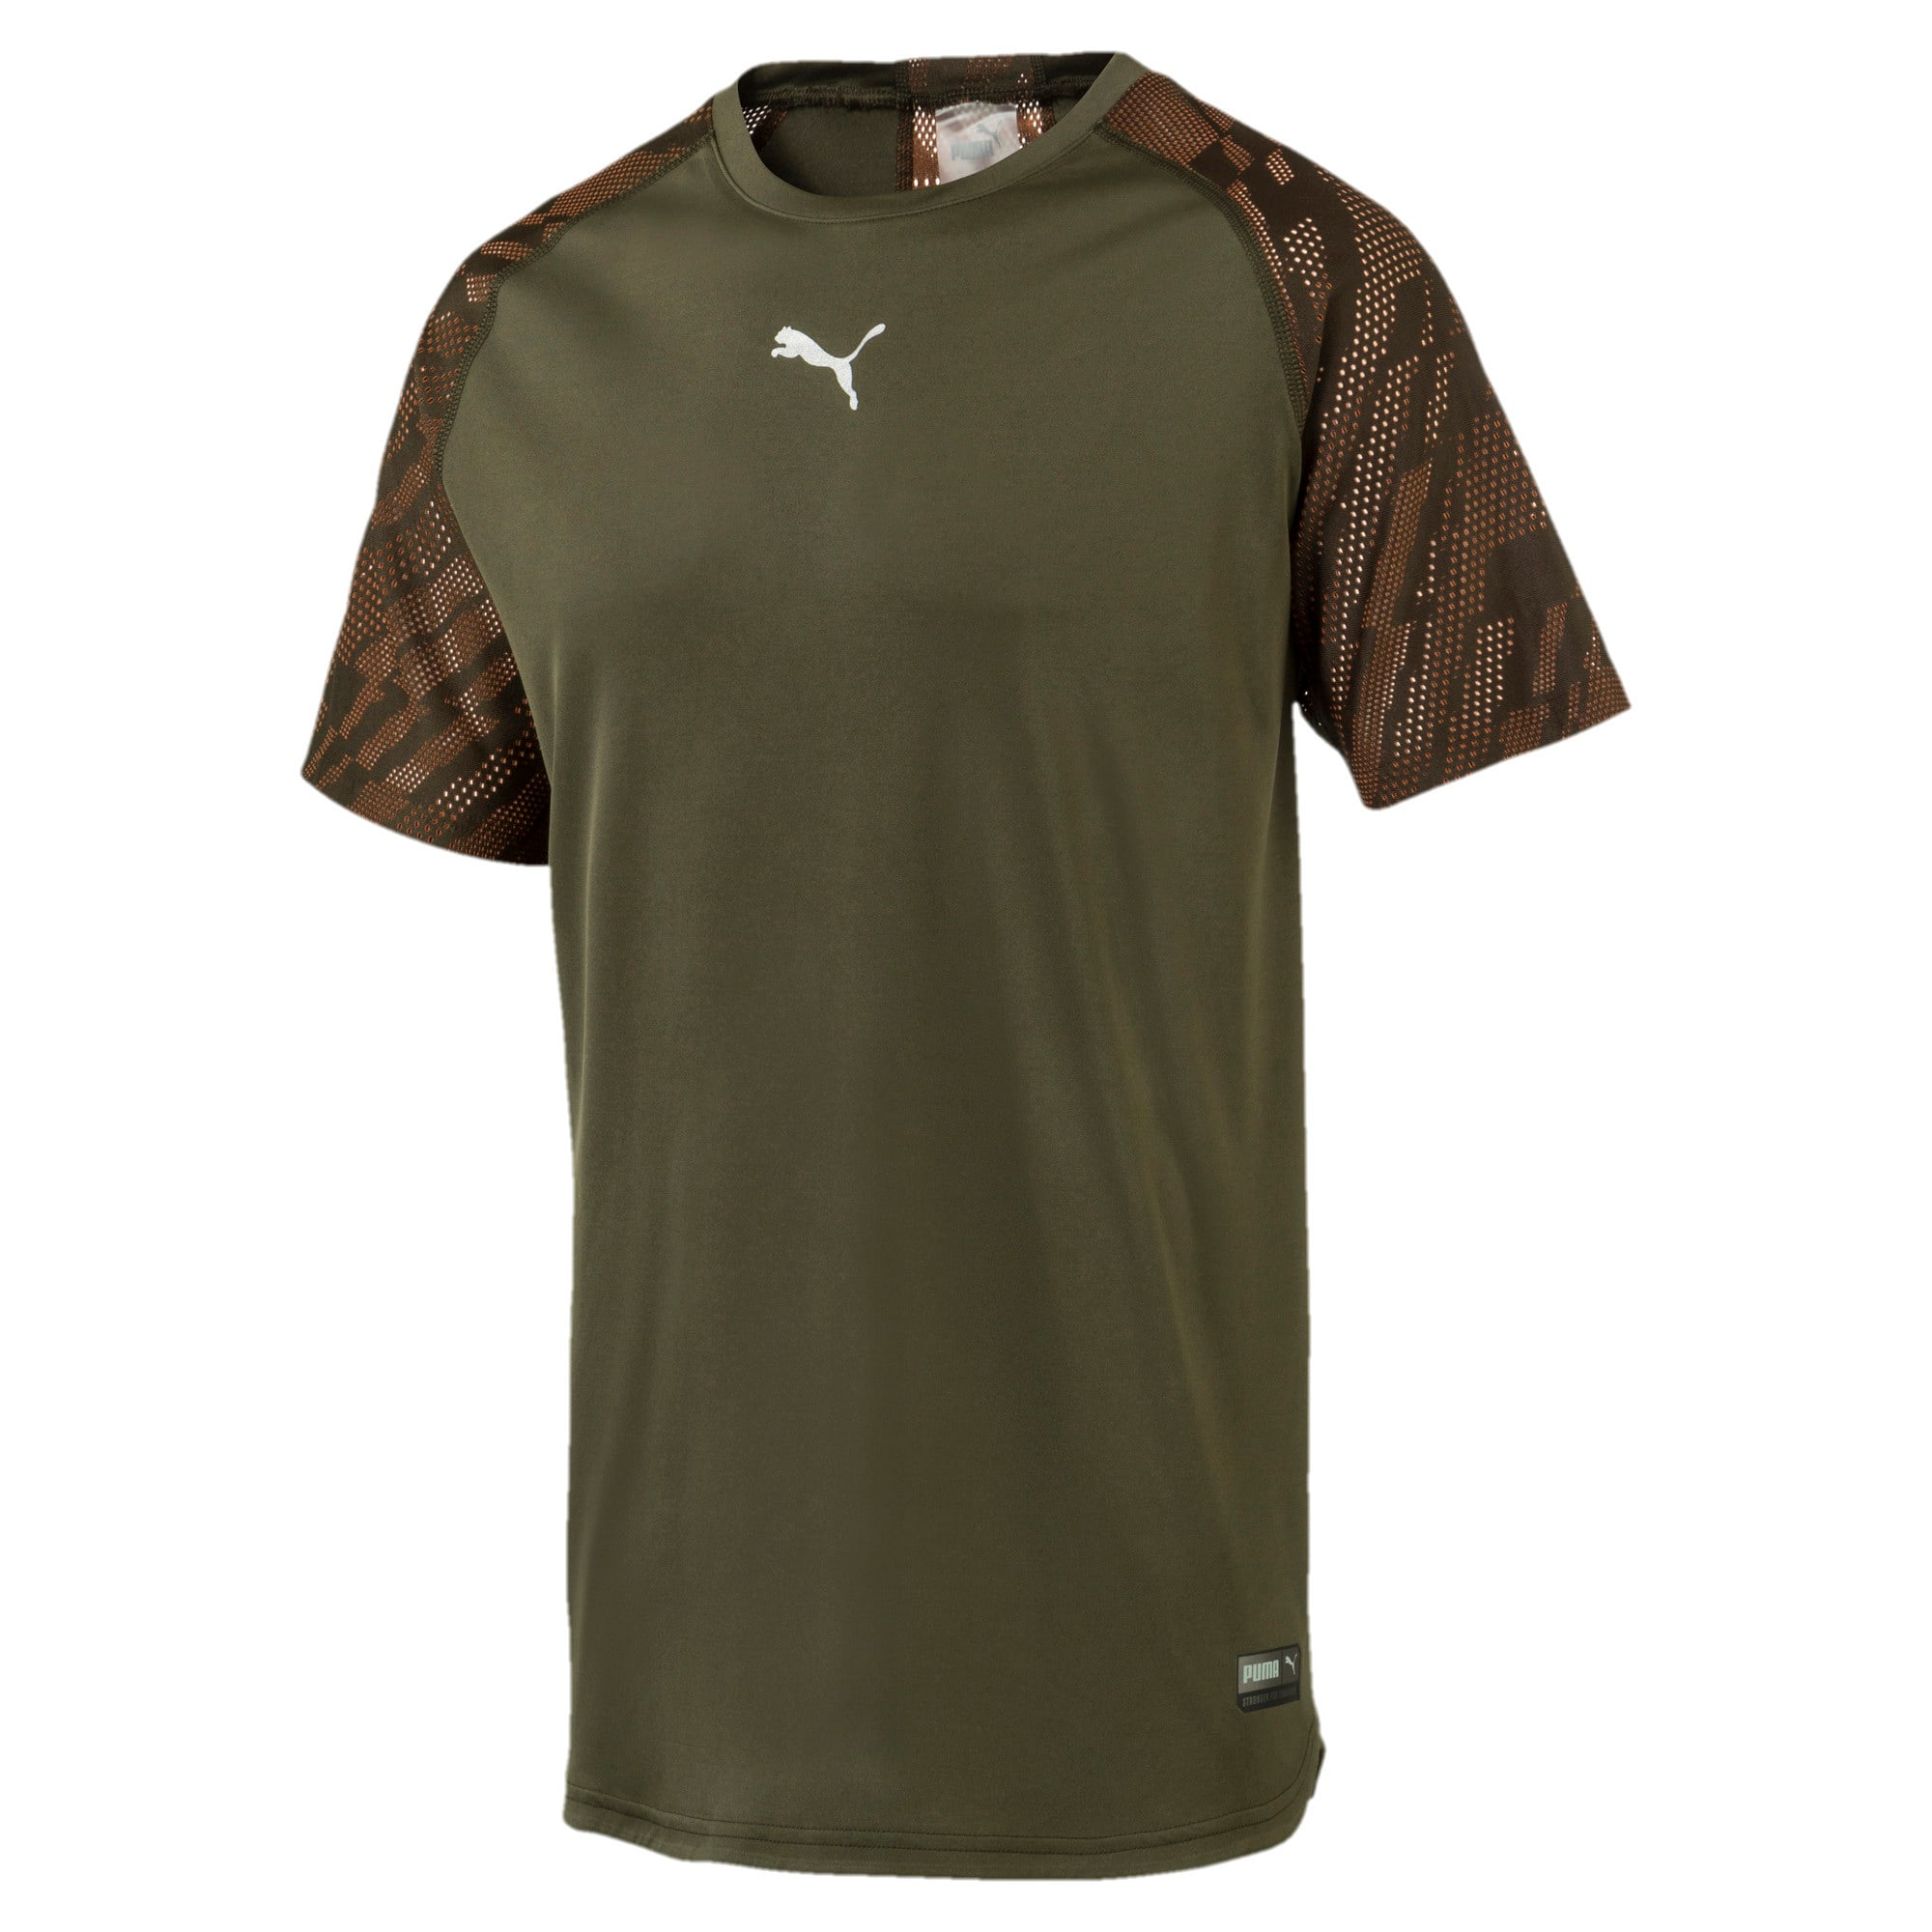 Thumbnail 4 of VENT Graphic Men's T-Shirt, Forest Night, medium-IND